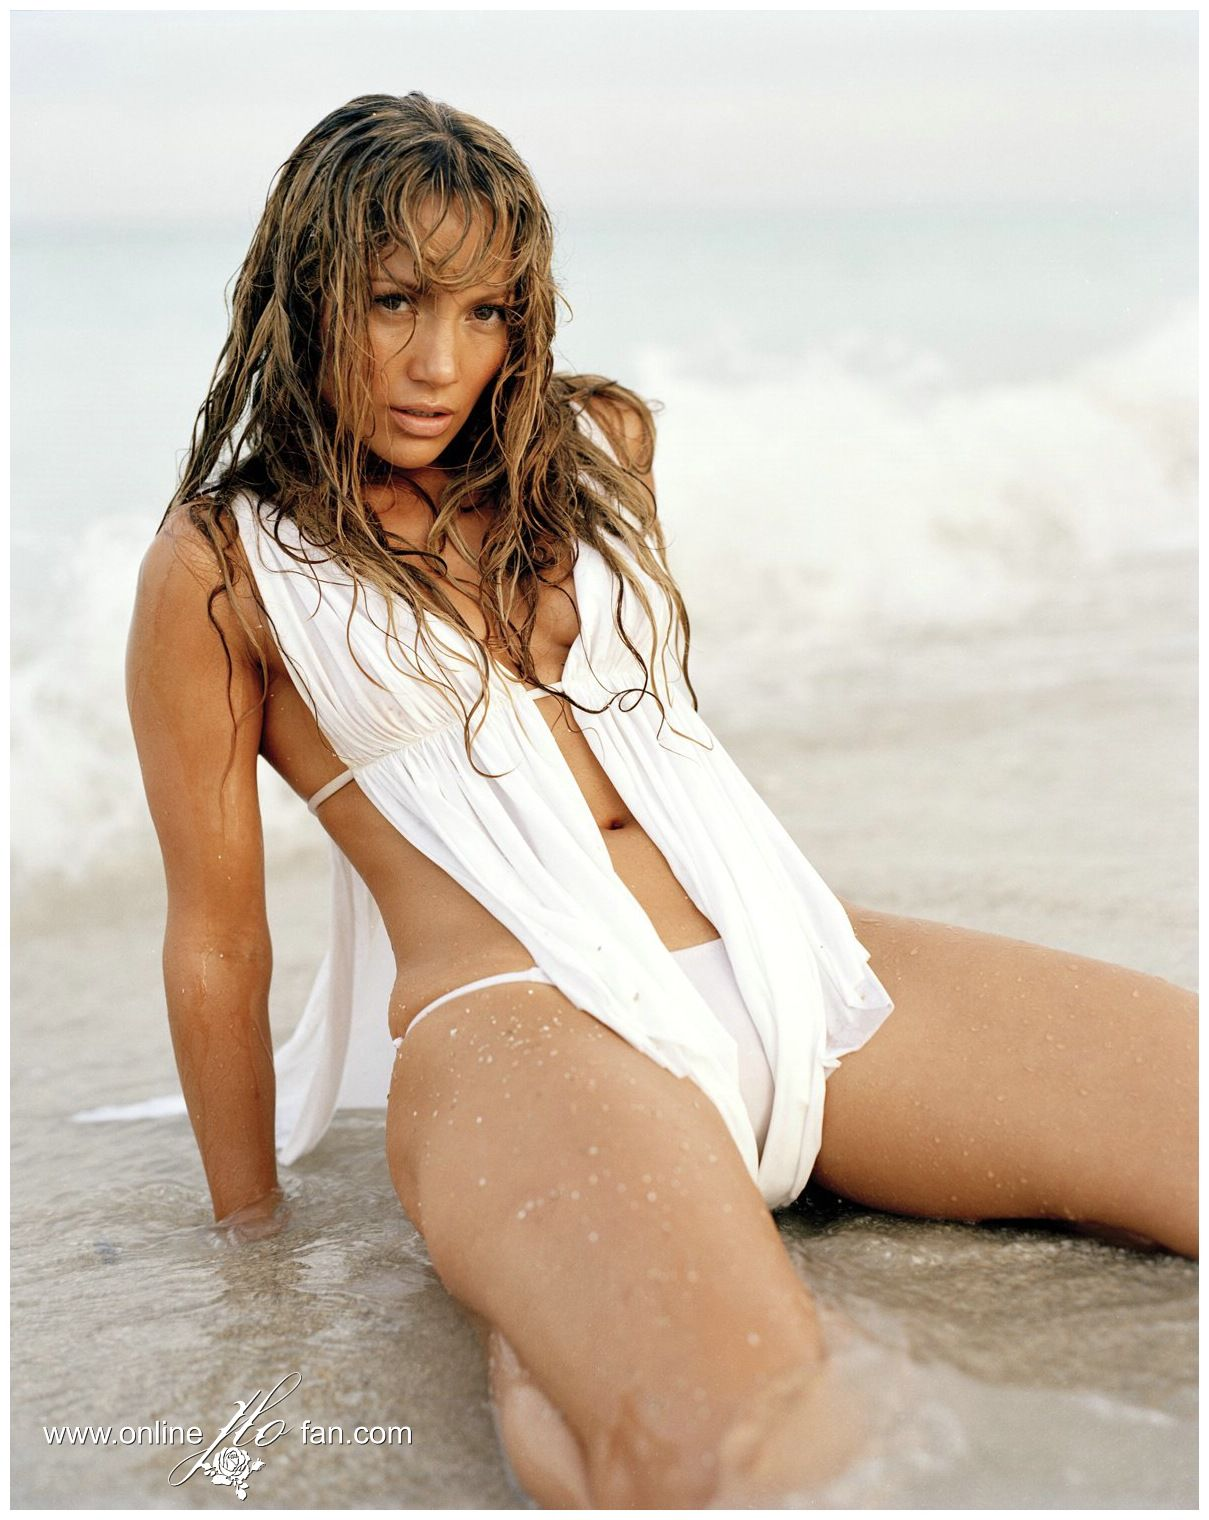 from Rylan hot bikini pics of jlo